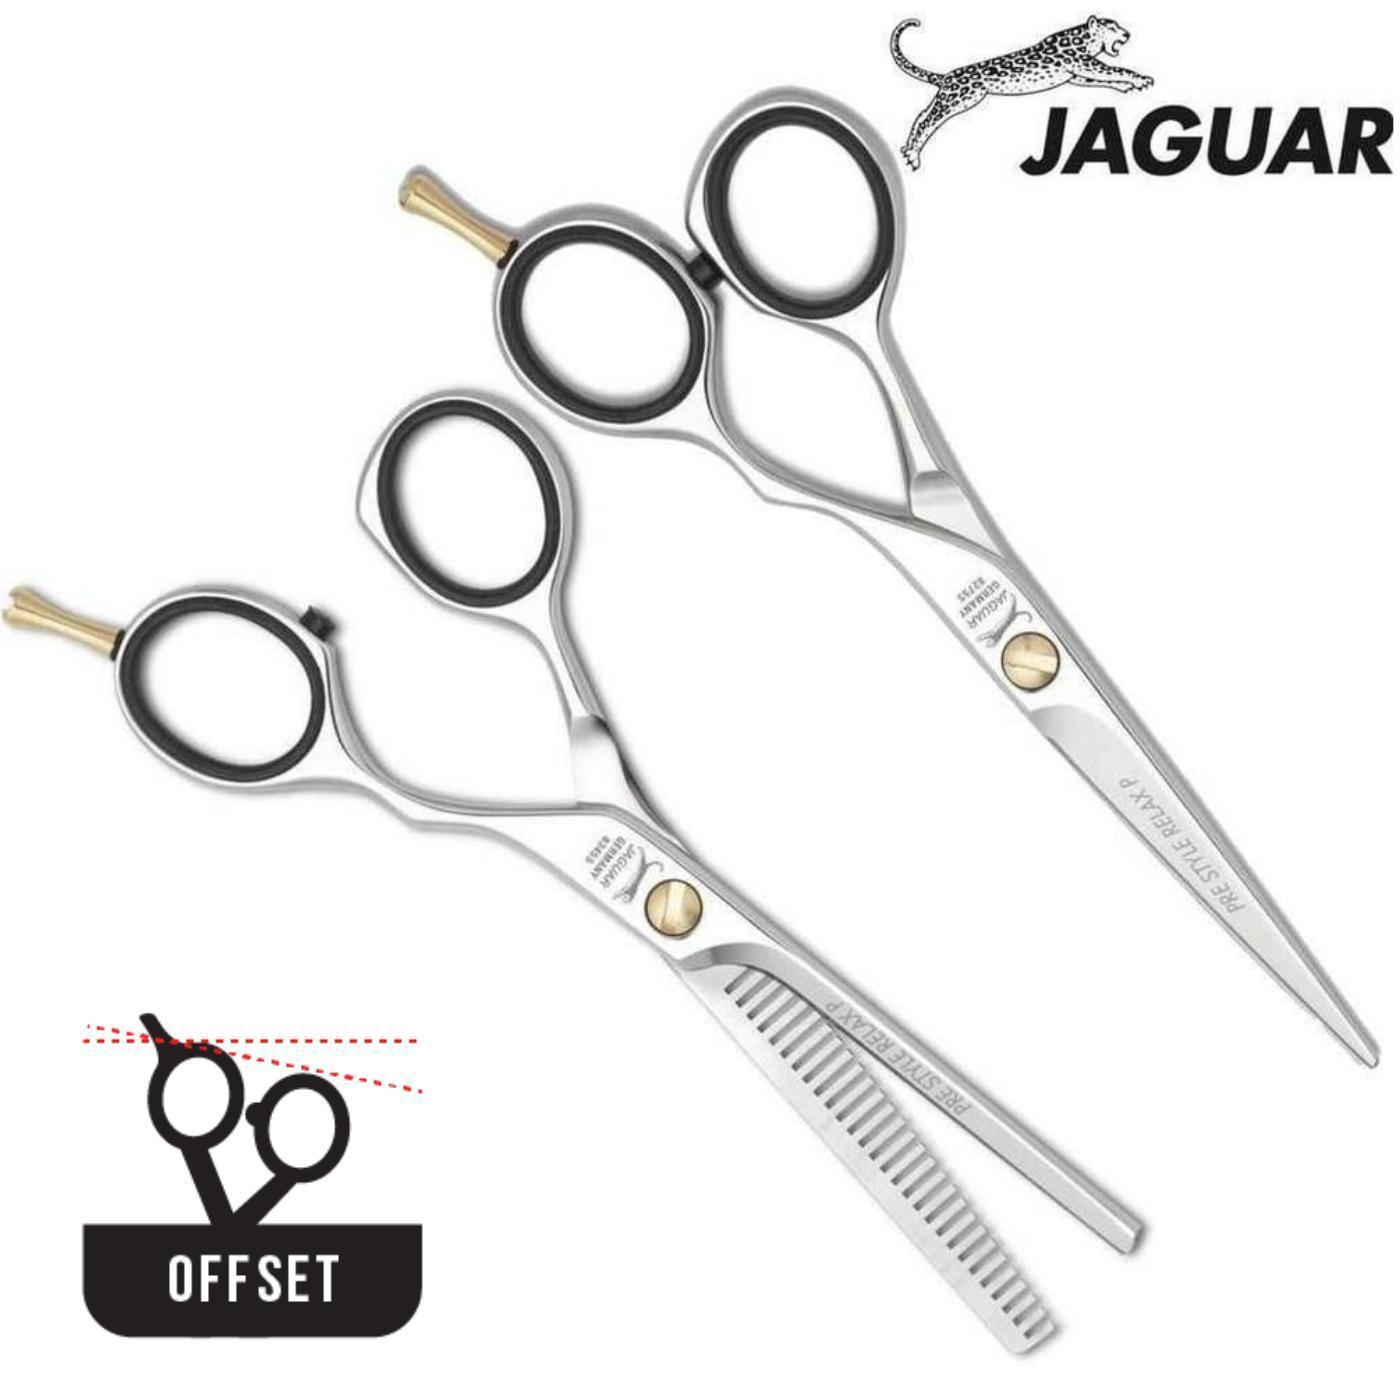 Jaguar Pre Style Relax Left-Handed Scissors Set - Japan Scissors